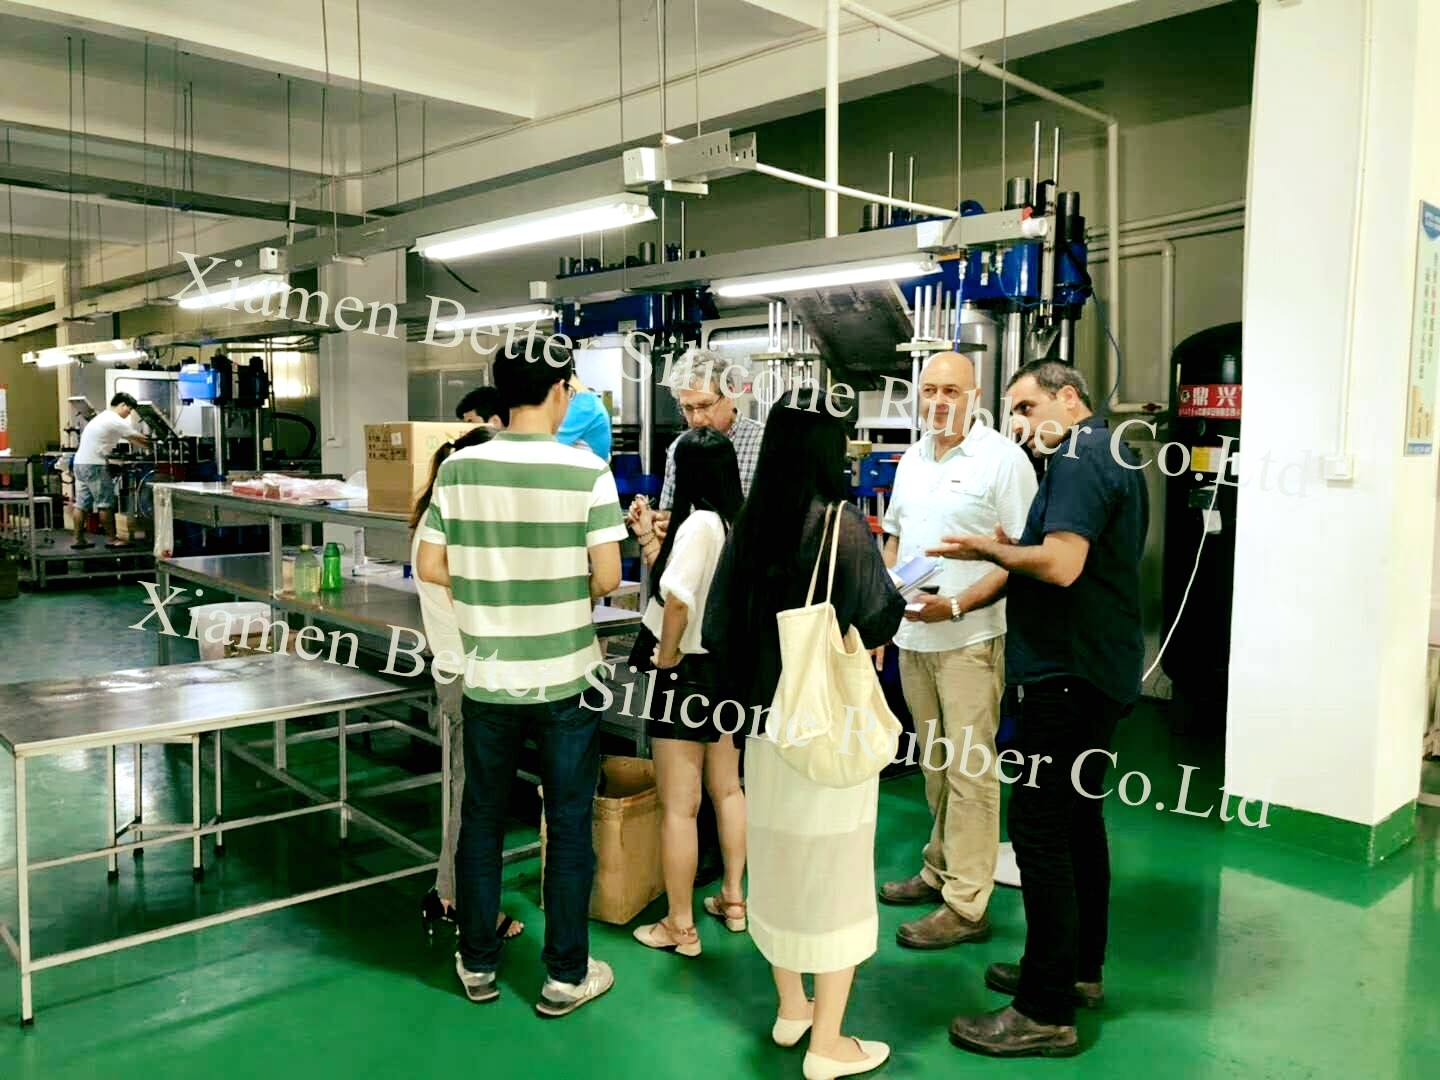 Our Israeli customer came to our silicone rubber factory for the second time to inspect